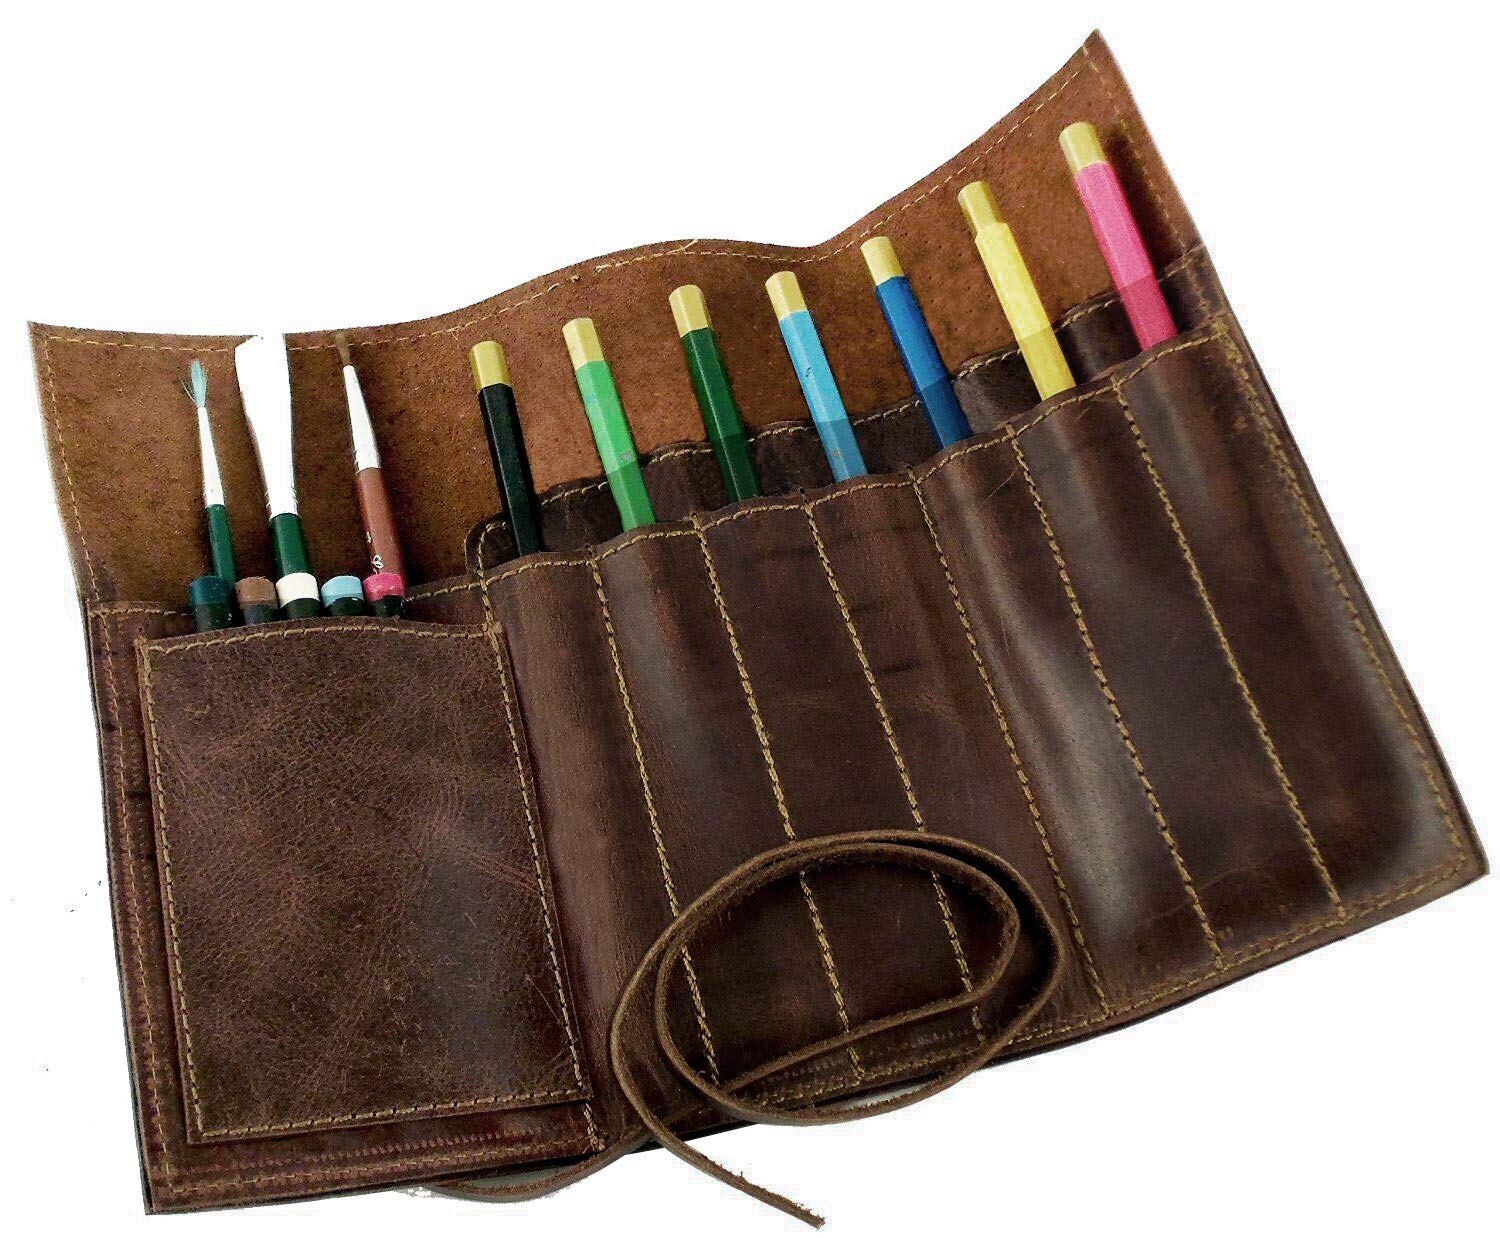 Rustic Art Brush Bag Genuine Leather Brown Pencil Roll Pouch Pen Case Holder Organizar Craft Color Brush Tool Bag for Artist Students Office Business Work GJB06 by QEES